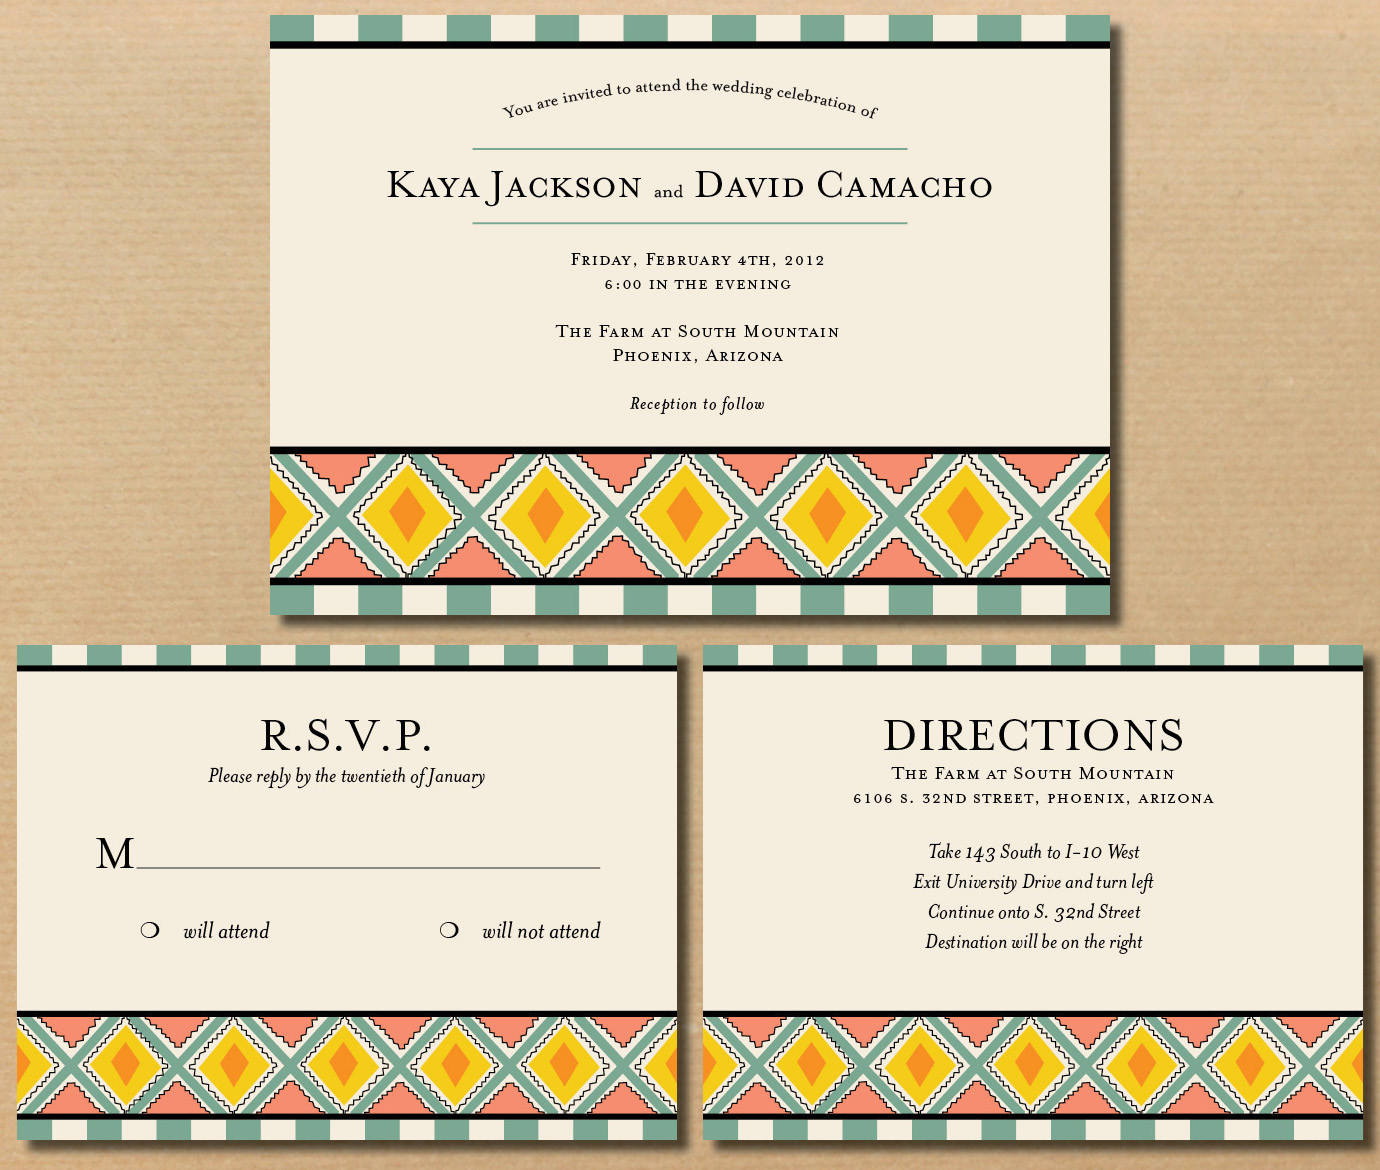 river & bridge: native-american influenced wedding invitations